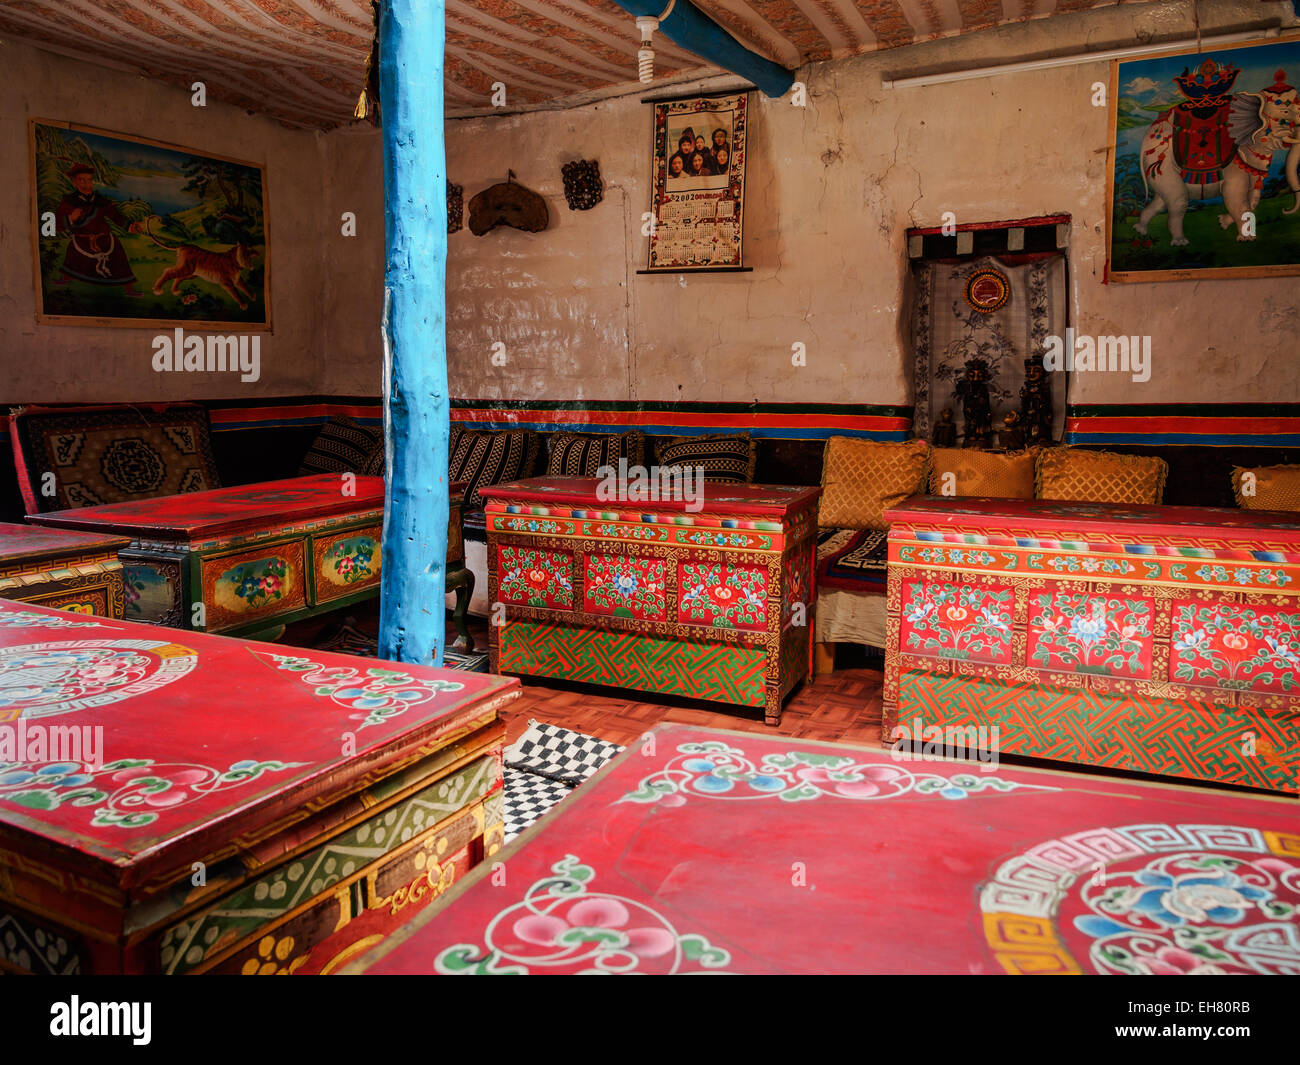 Traditional Tibetan Style Furniture In A Dining Room In Ghami, Upper  Mustang, Nepal